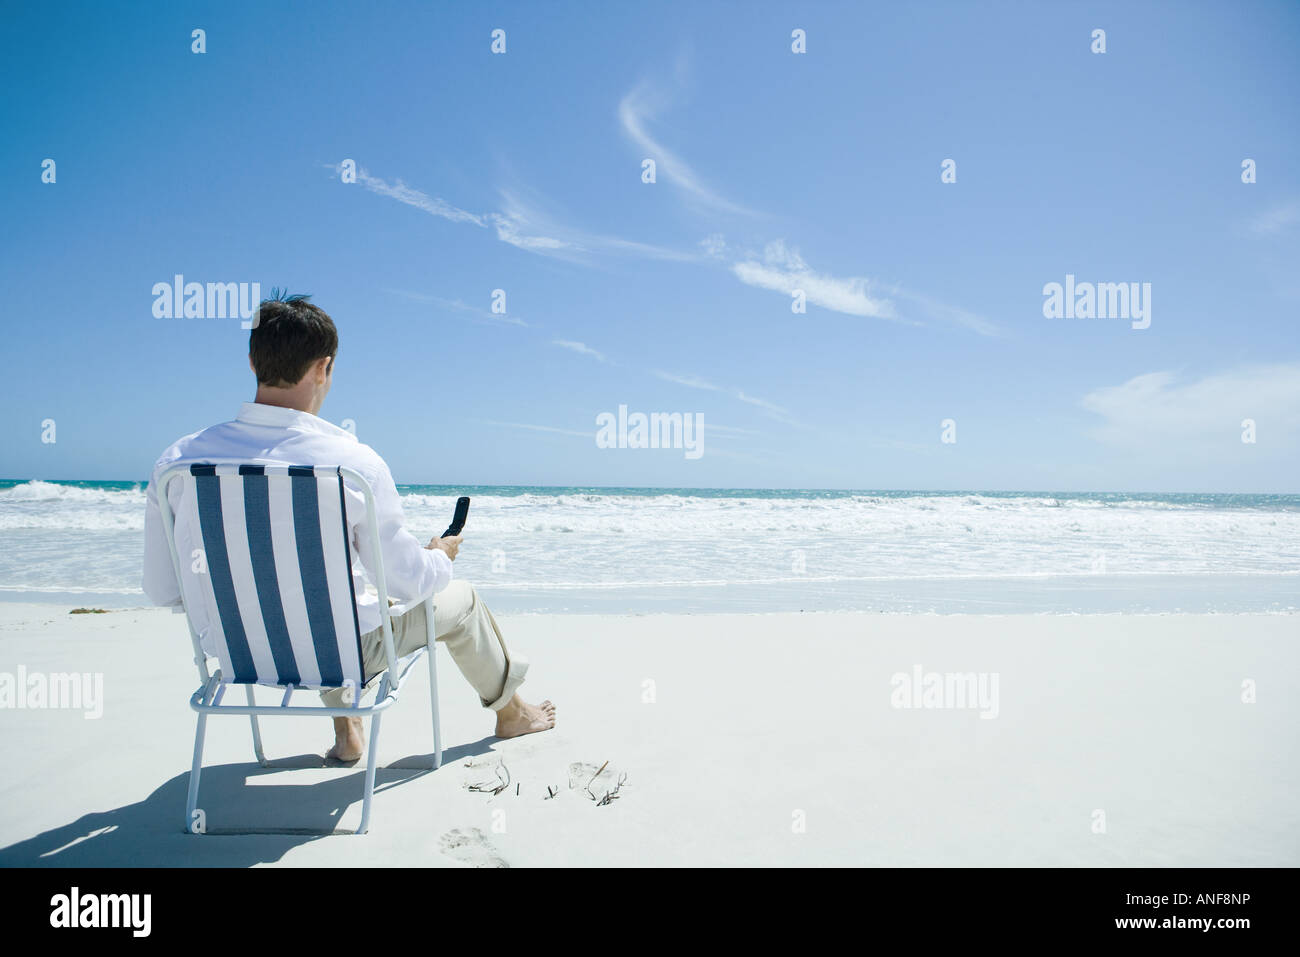 Man Sitting In Folding Chair On Beach Holding Cell Phone Rear View Stock Photo Alamy